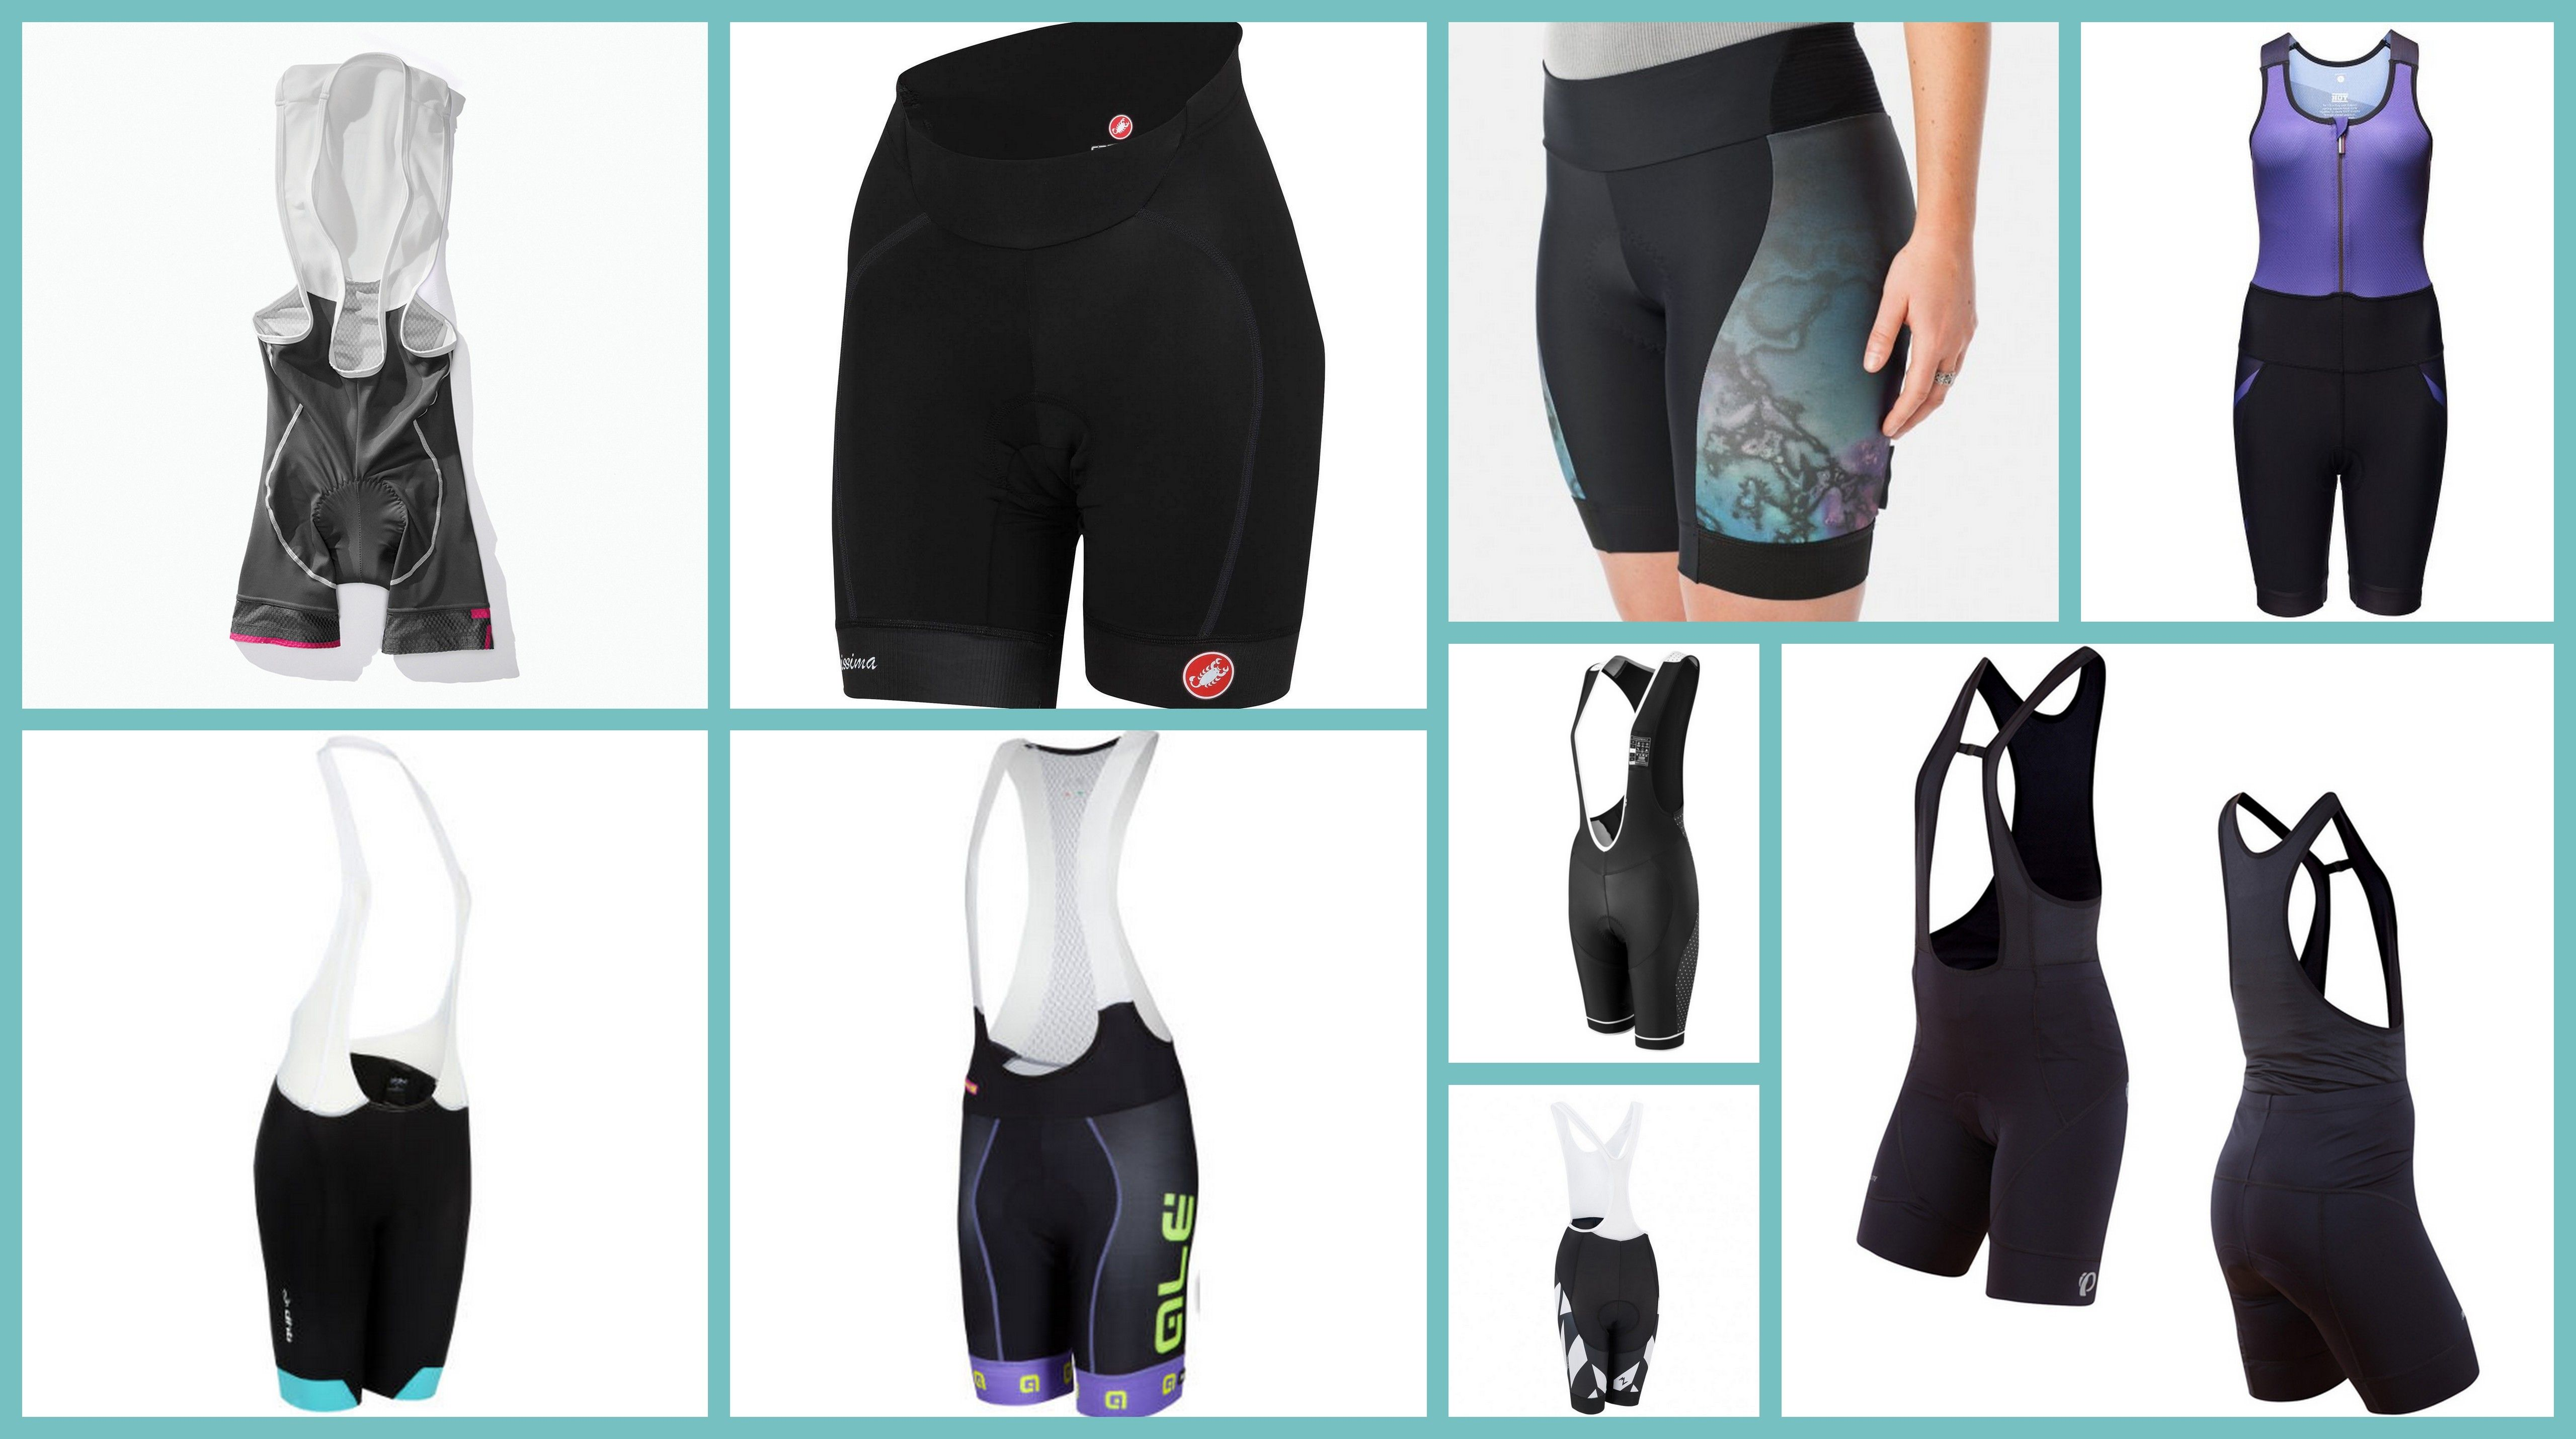 9 Best Pairs Of Padded Cycling Shorts For Women With Images Cycling Shorts Padded Cycling Shorts Cycling Shorts Women